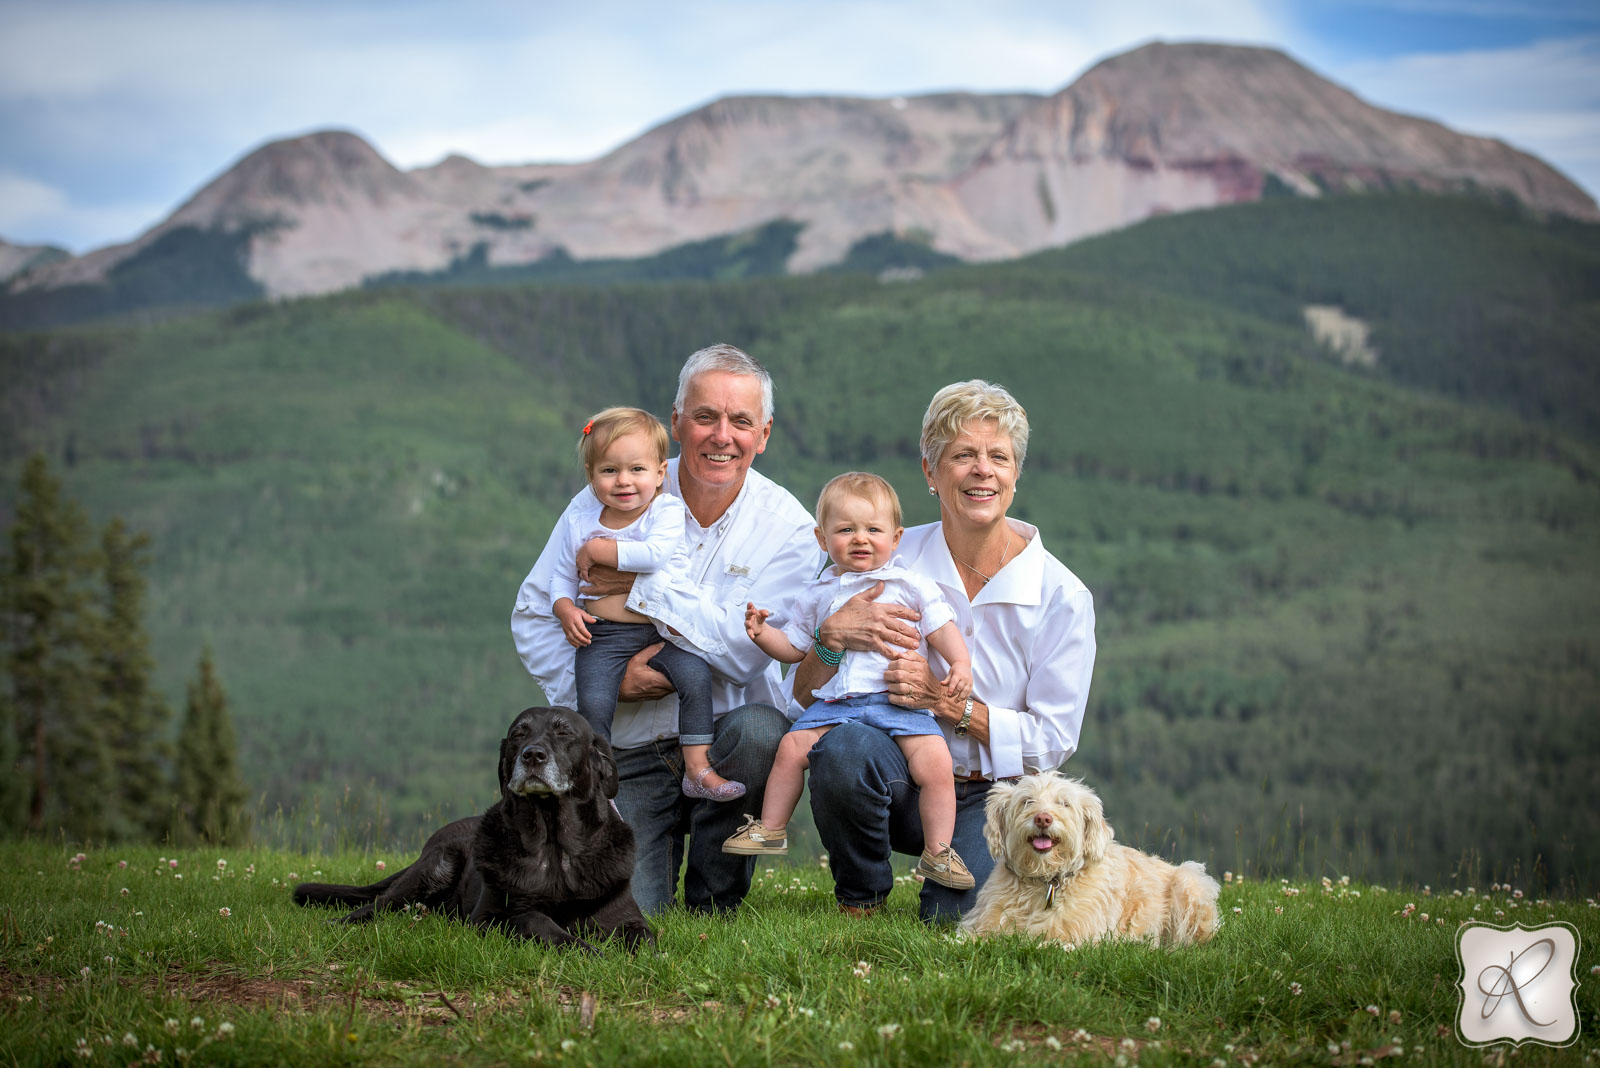 Family Portraits in the Mountains of Durango Colorado Photographed by Professional Photographer Allison Ragsdale Photography